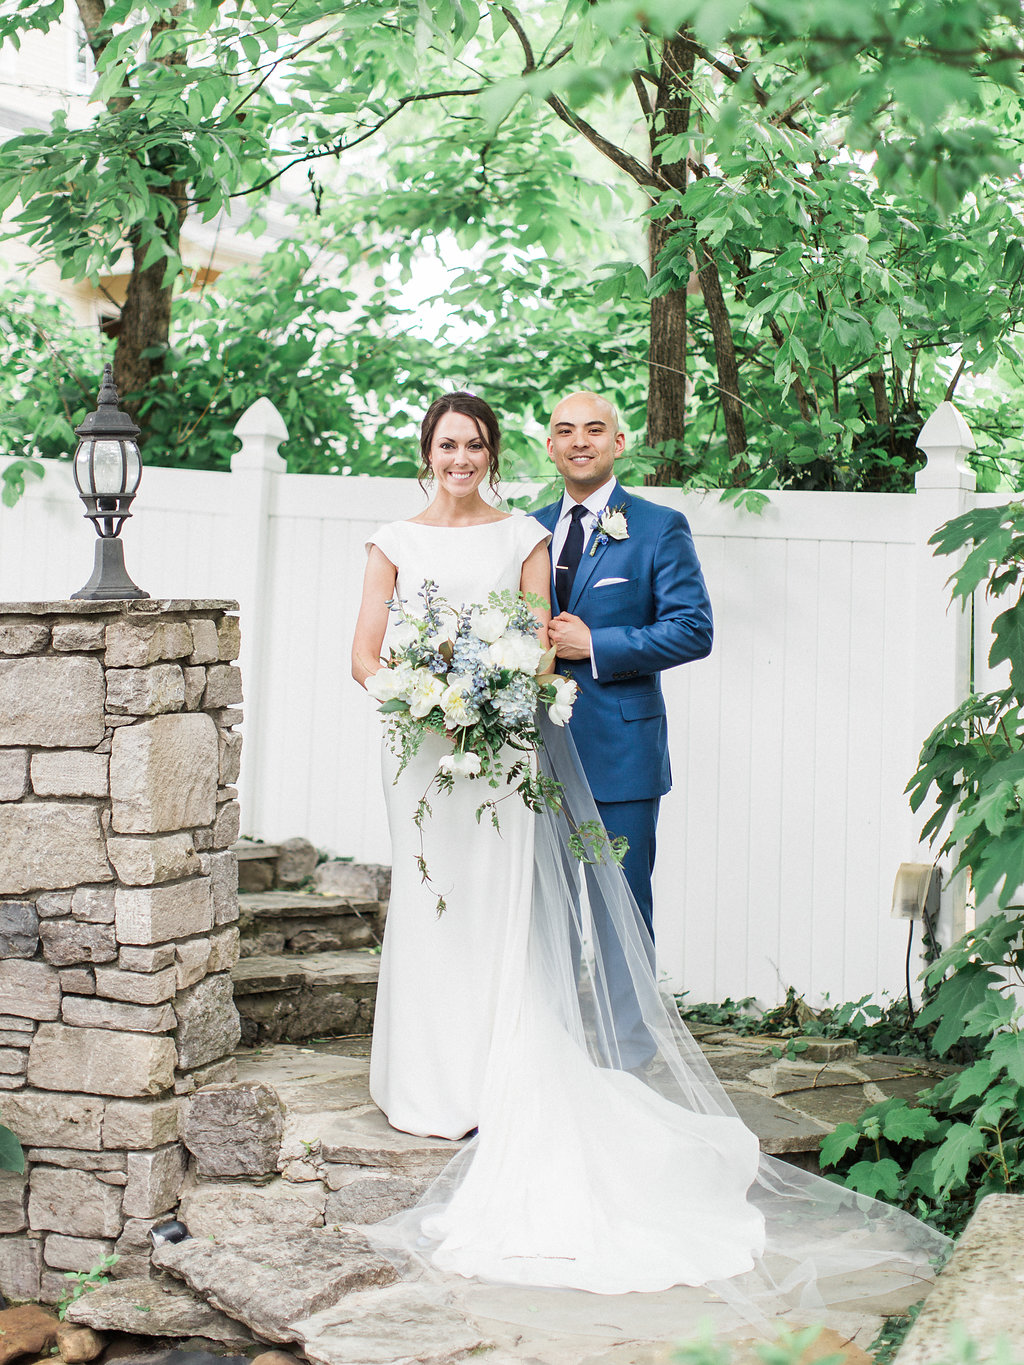 Sweet and Chic Southern Garden Wedding - CJ's Off the Square